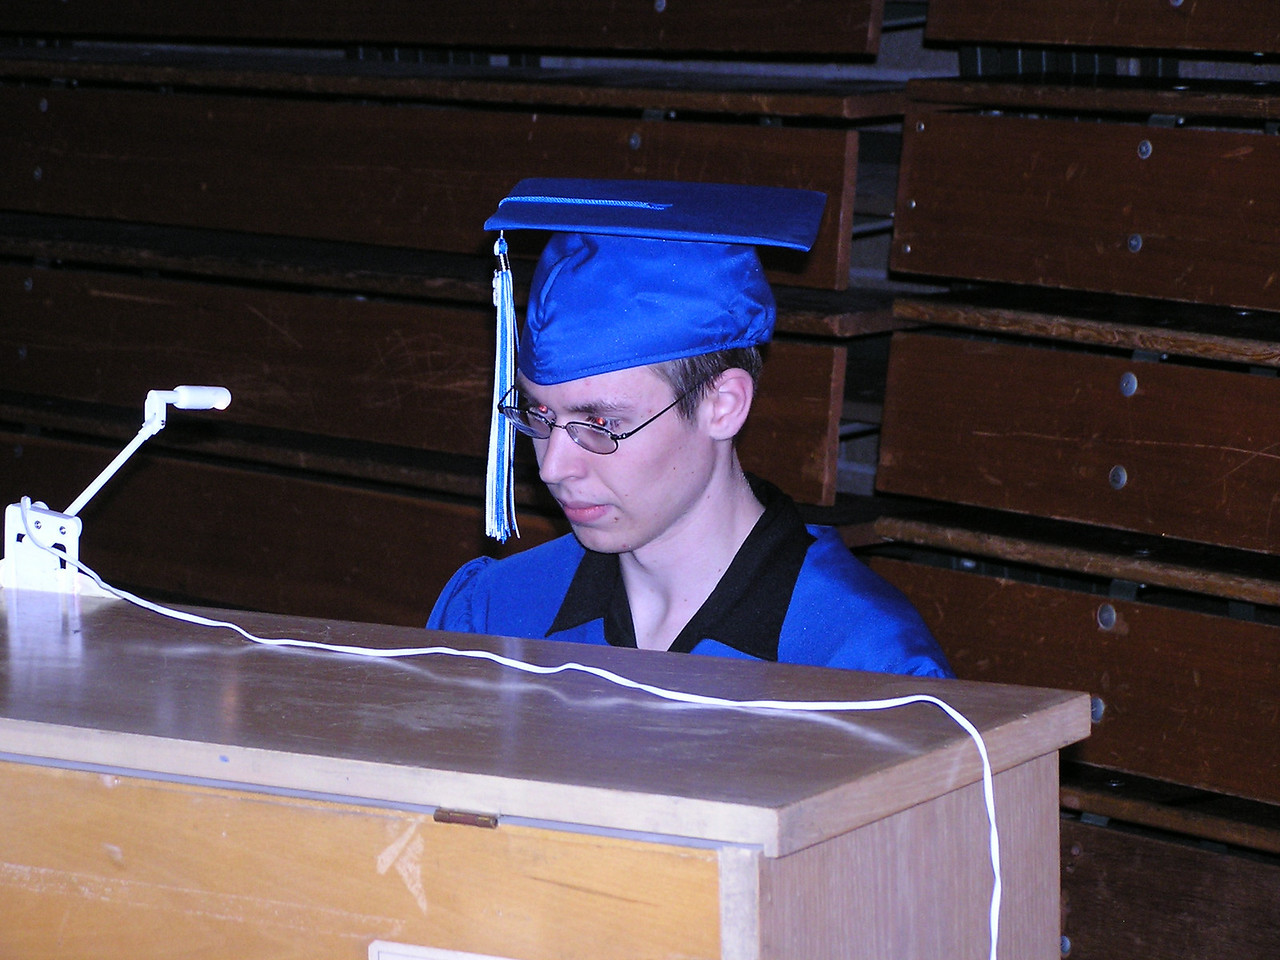 Kevin played piano for graduation.